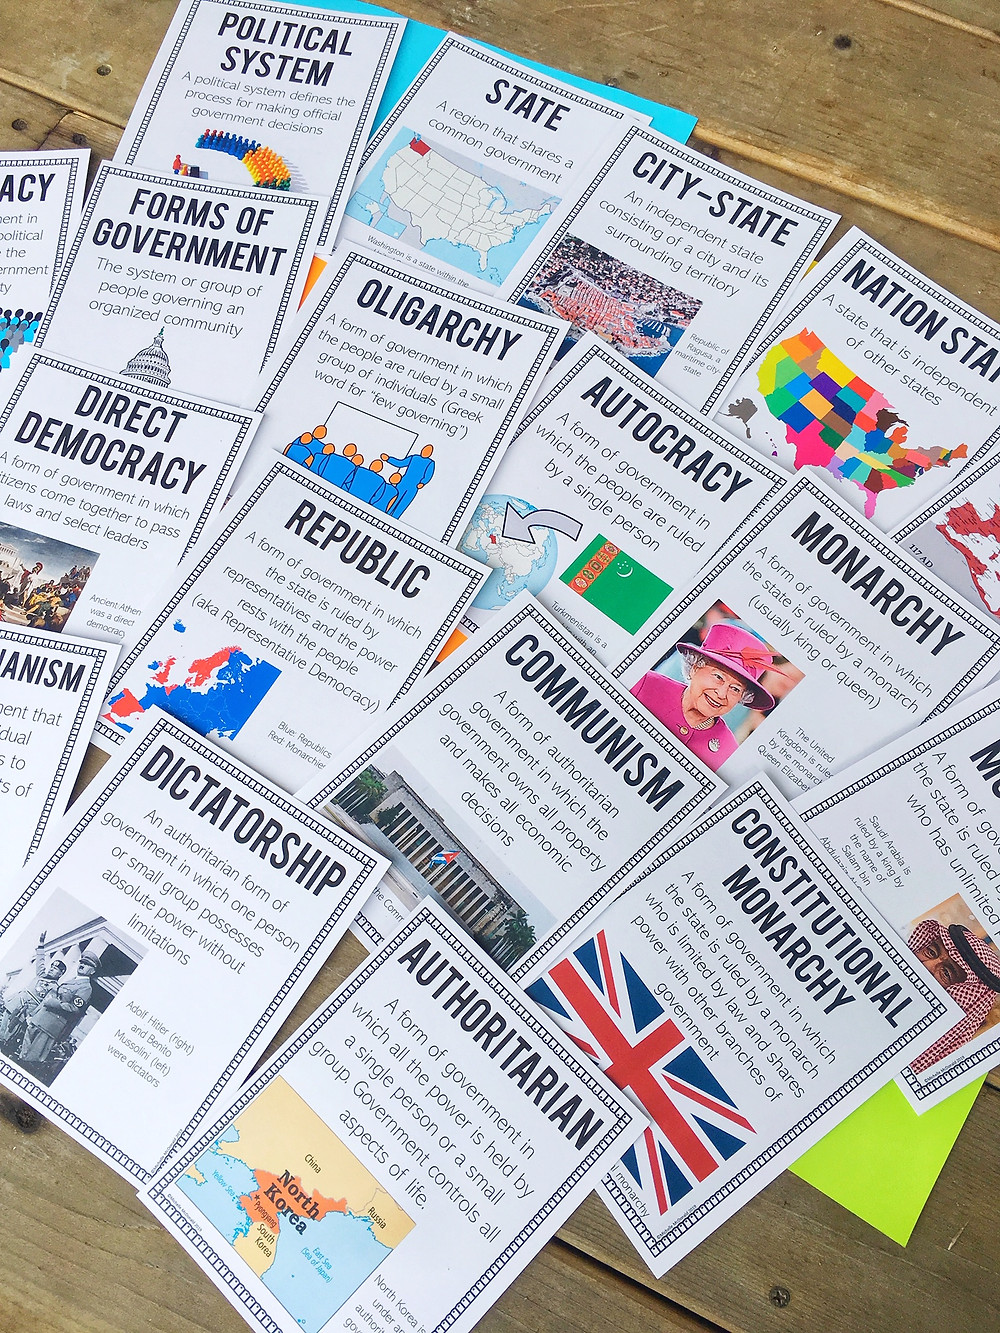 Political Systems and Forms of Government Printable Posters for Social Studies class